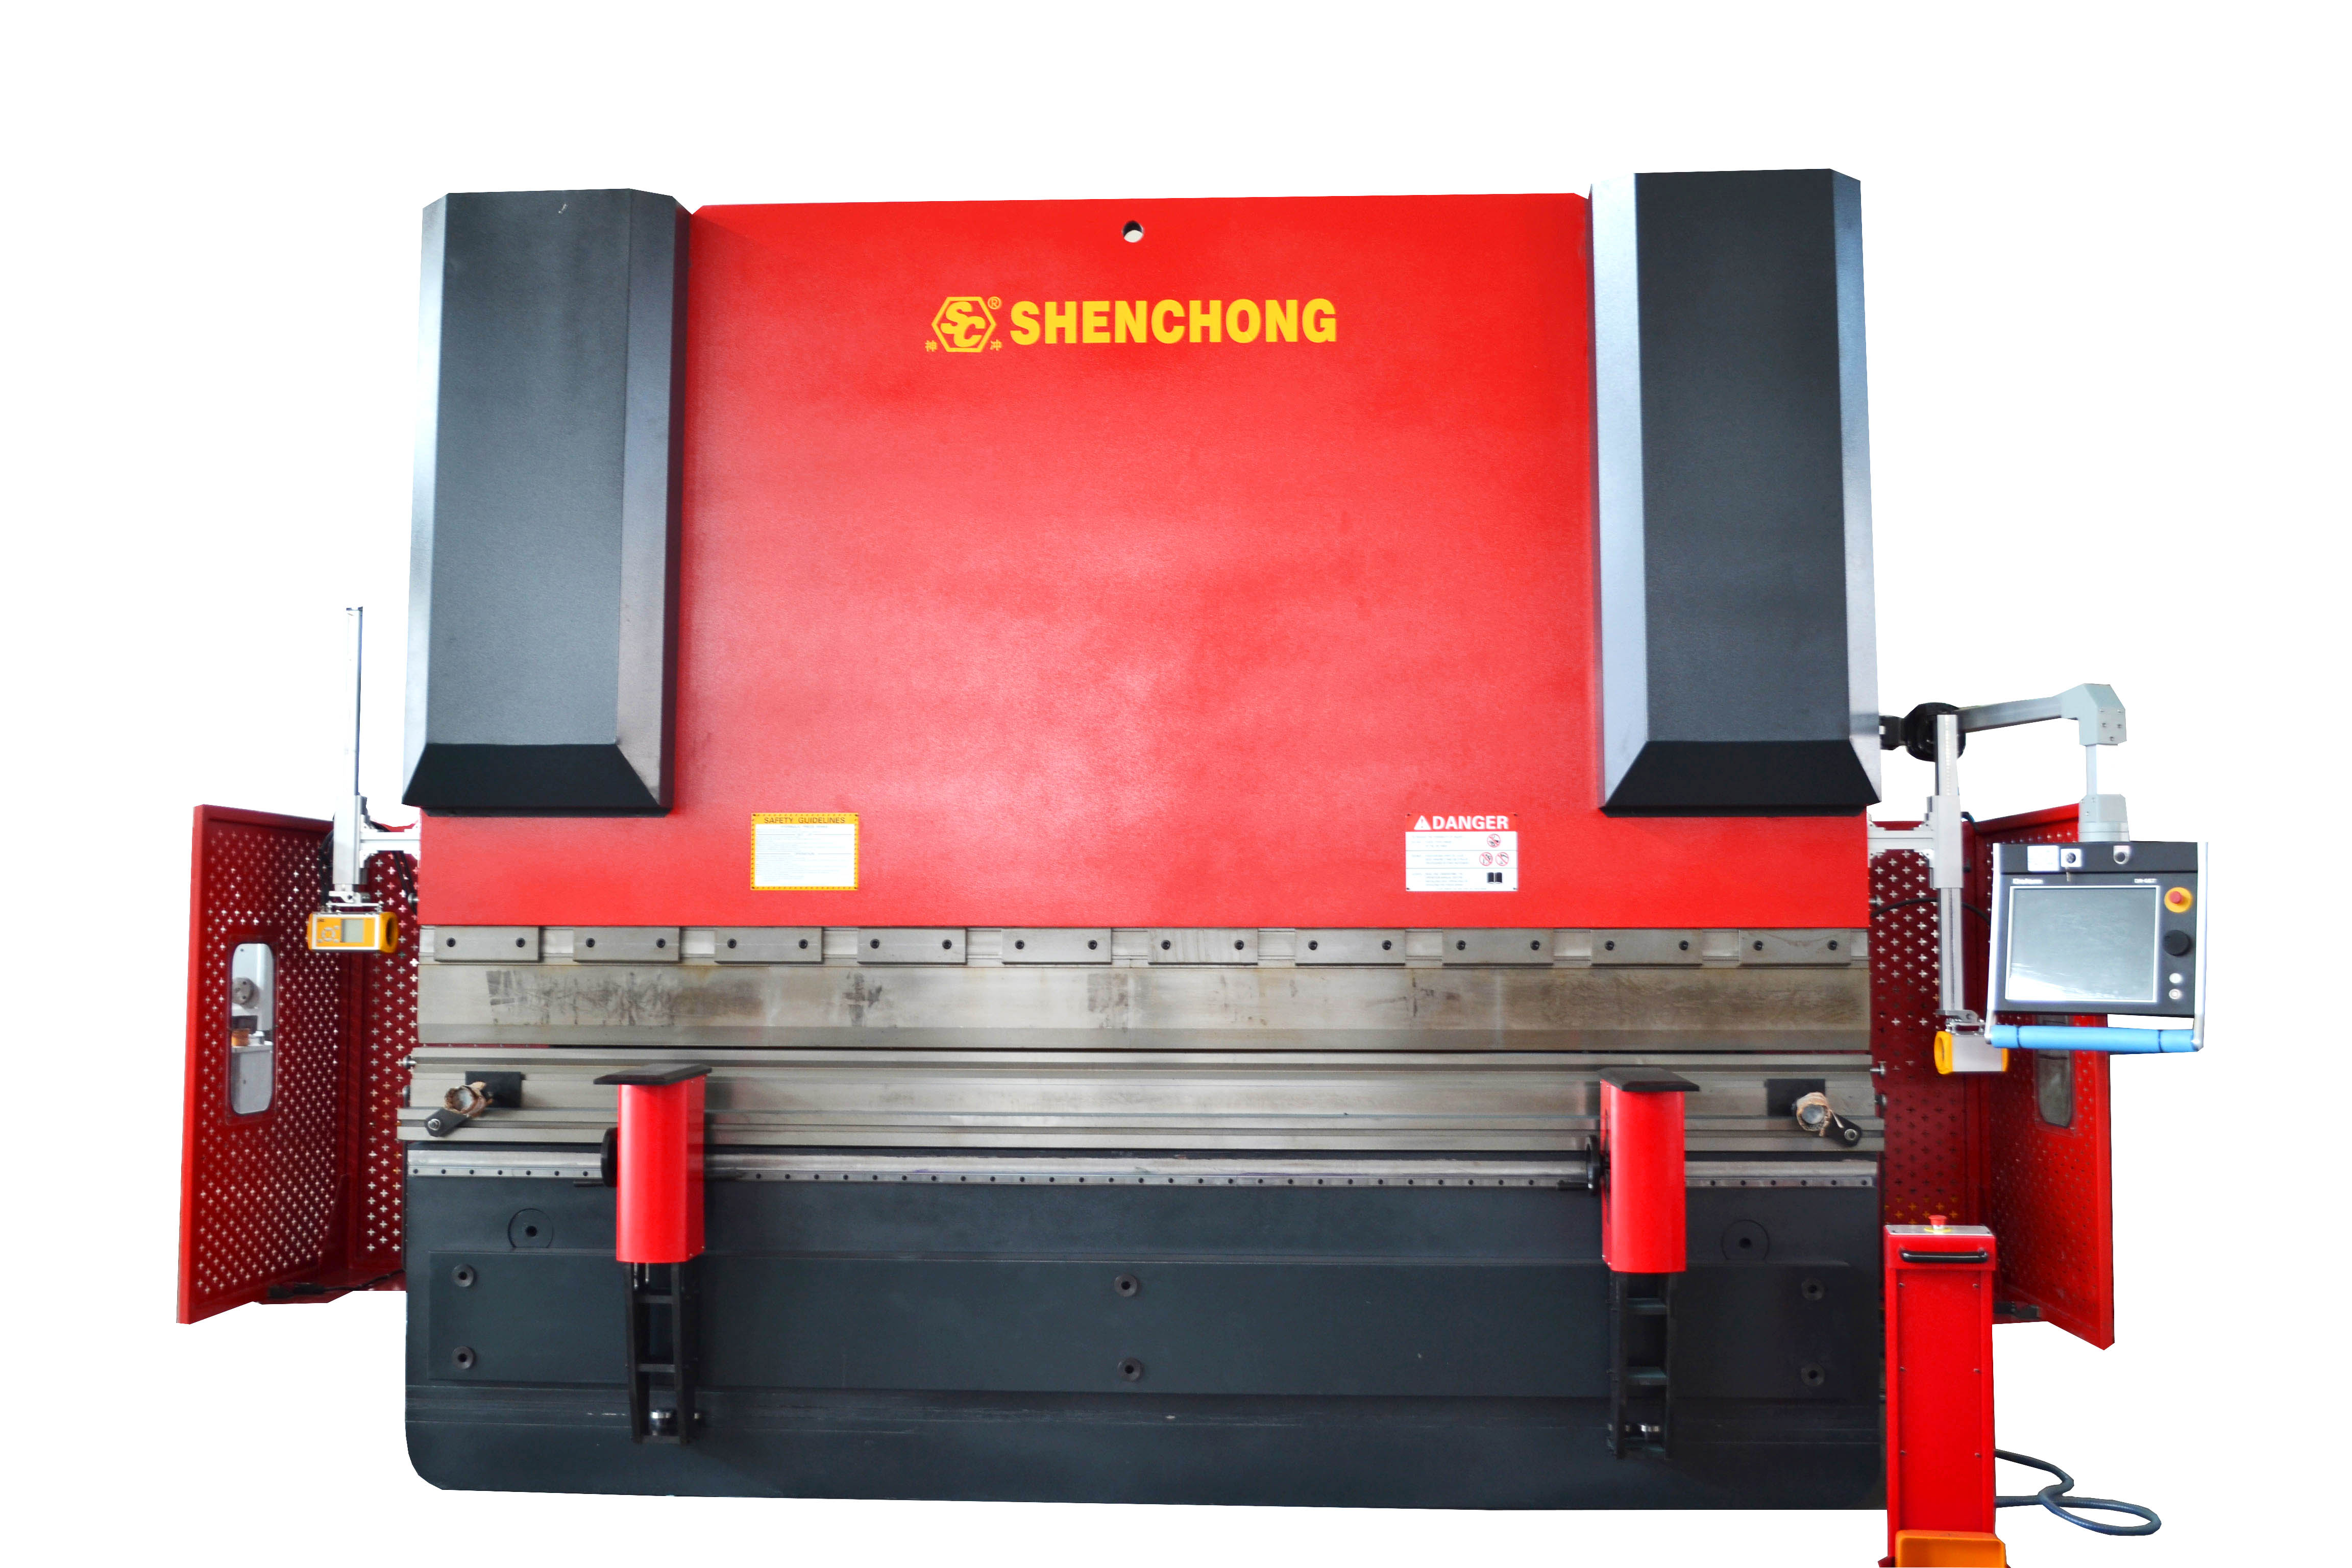 CNC hydraulic press brake 400T4000 DELEM 66T for sheet metal fabrication